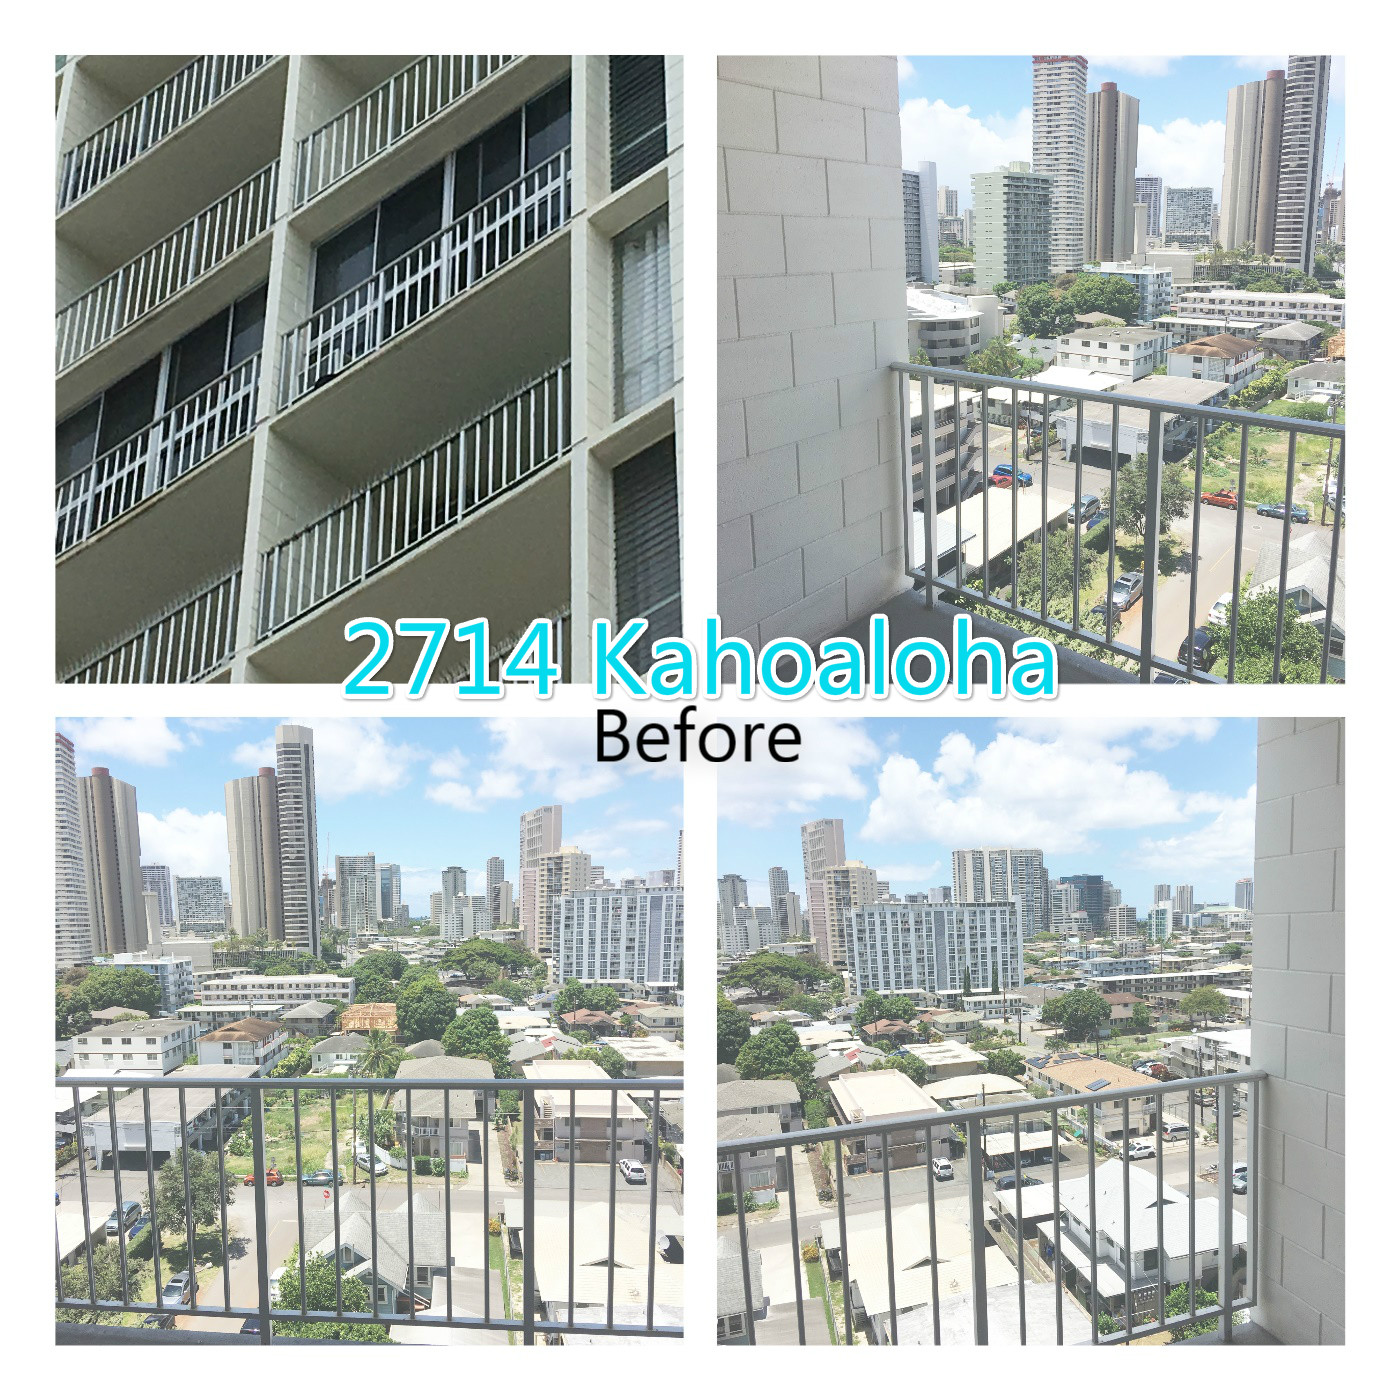 2714 Kahoaloha Lane before_meitu_5 (1).jpg